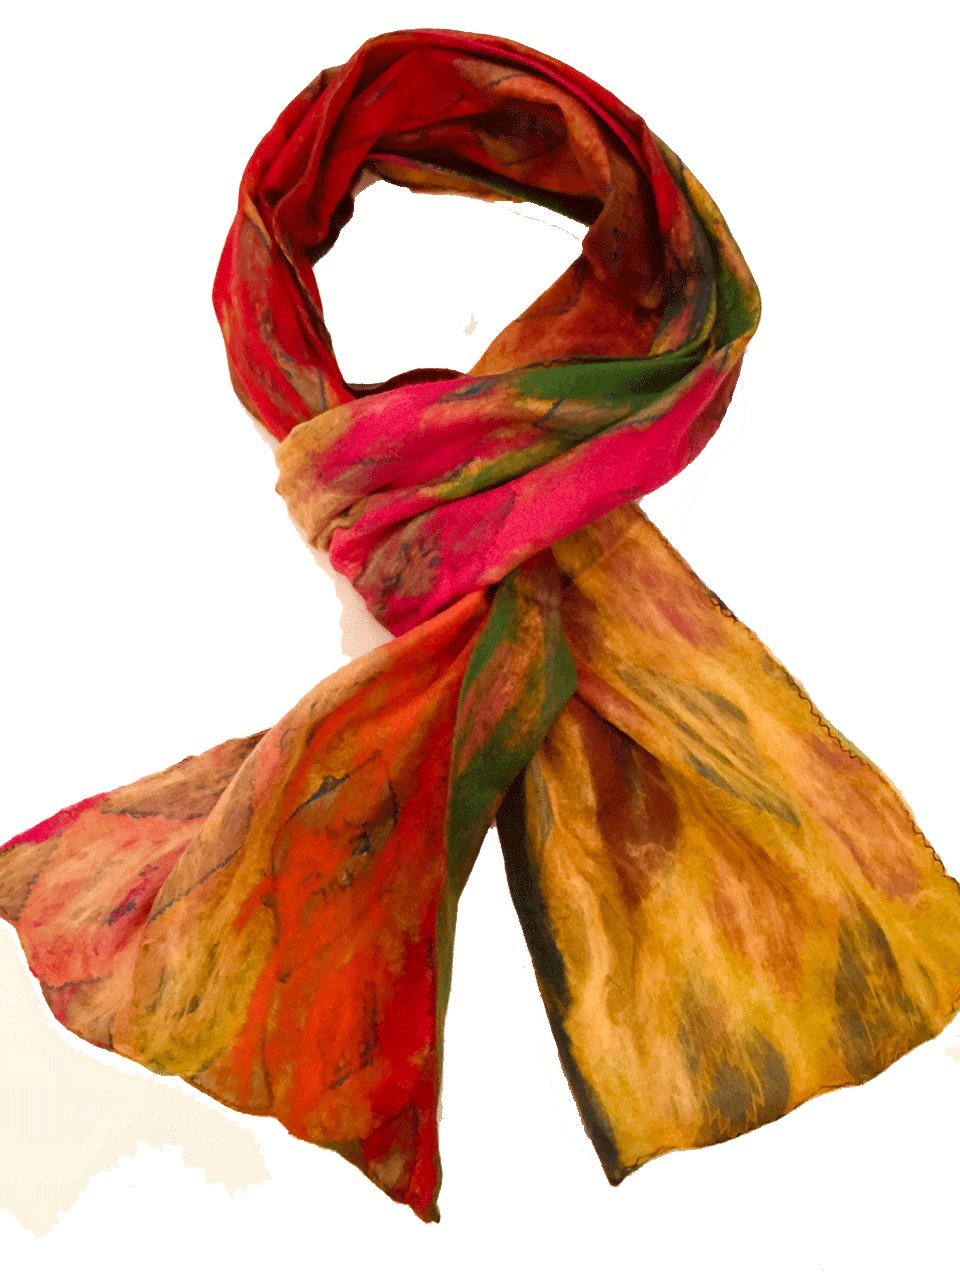 Teramasu One of a Kind Handmade Silk Merino Wool Multicolored Artist Scarf Style 7 by Teramasu